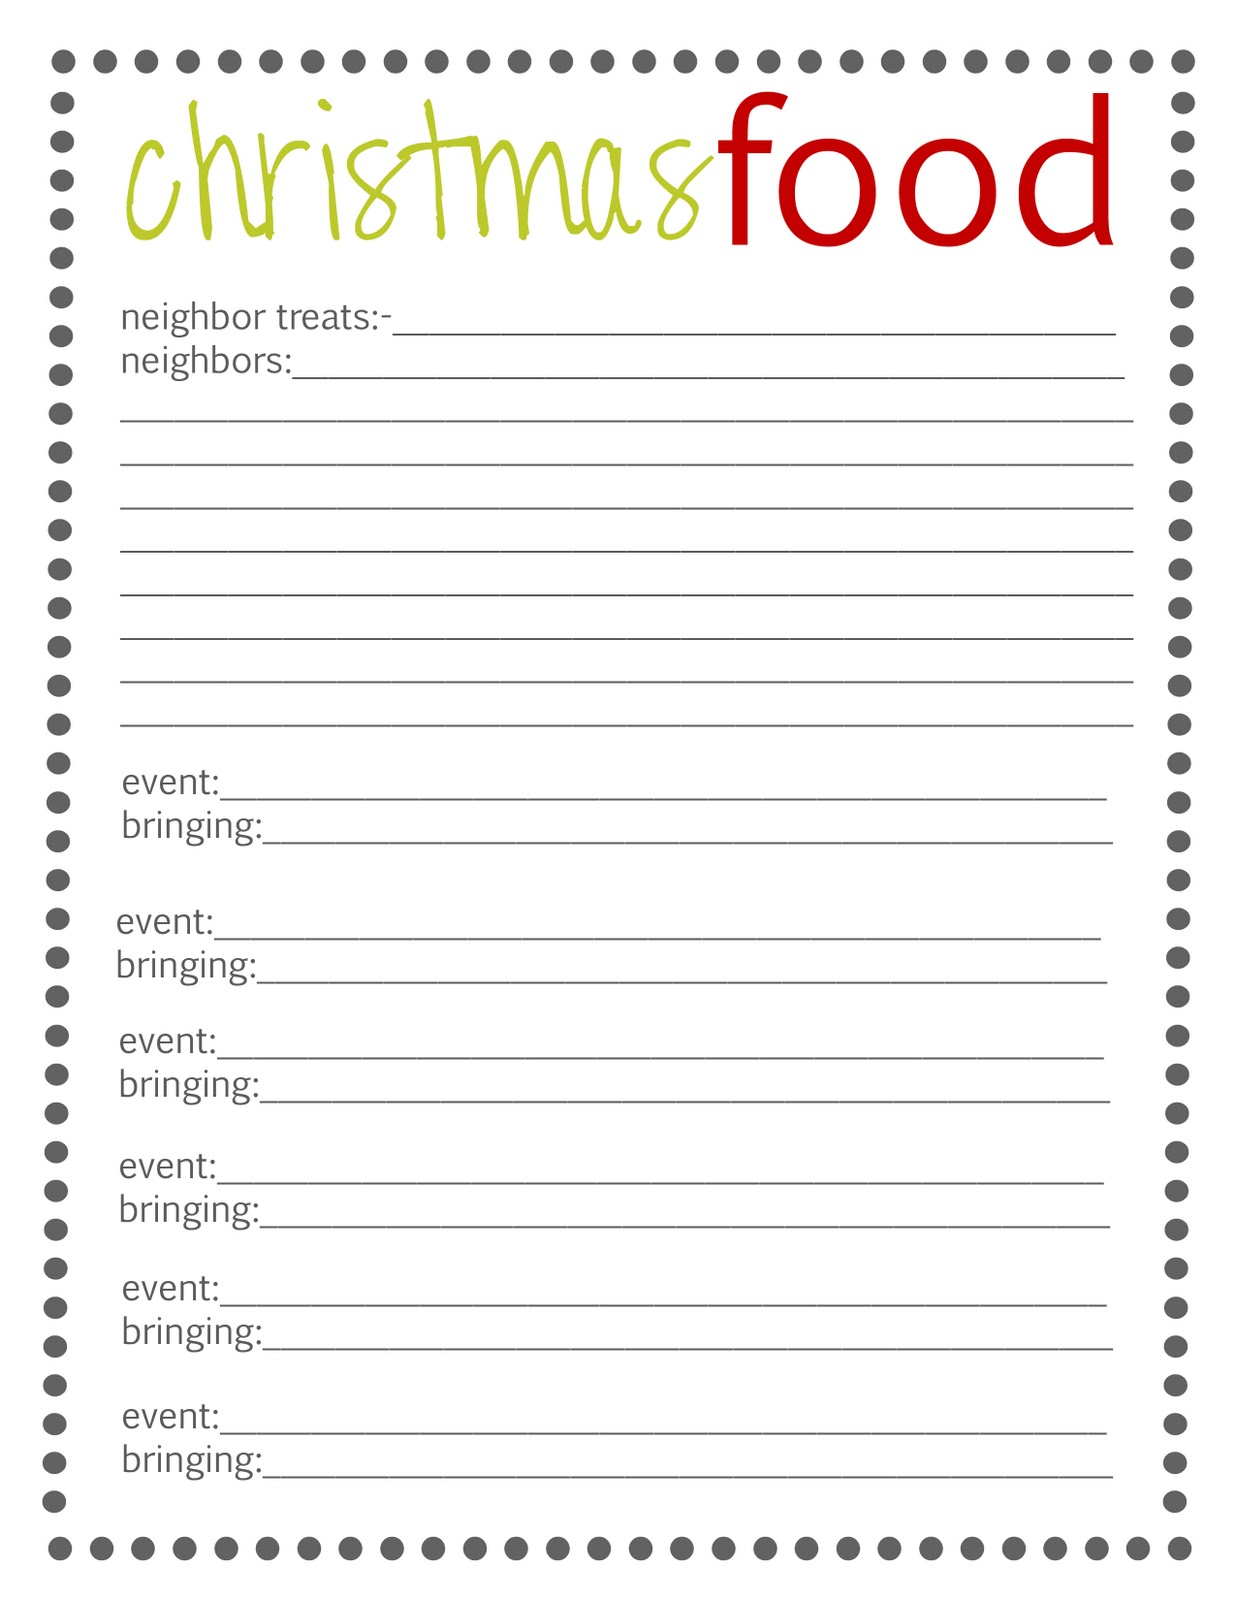 Lovely Little Snippets Planning Christmas Free Printables